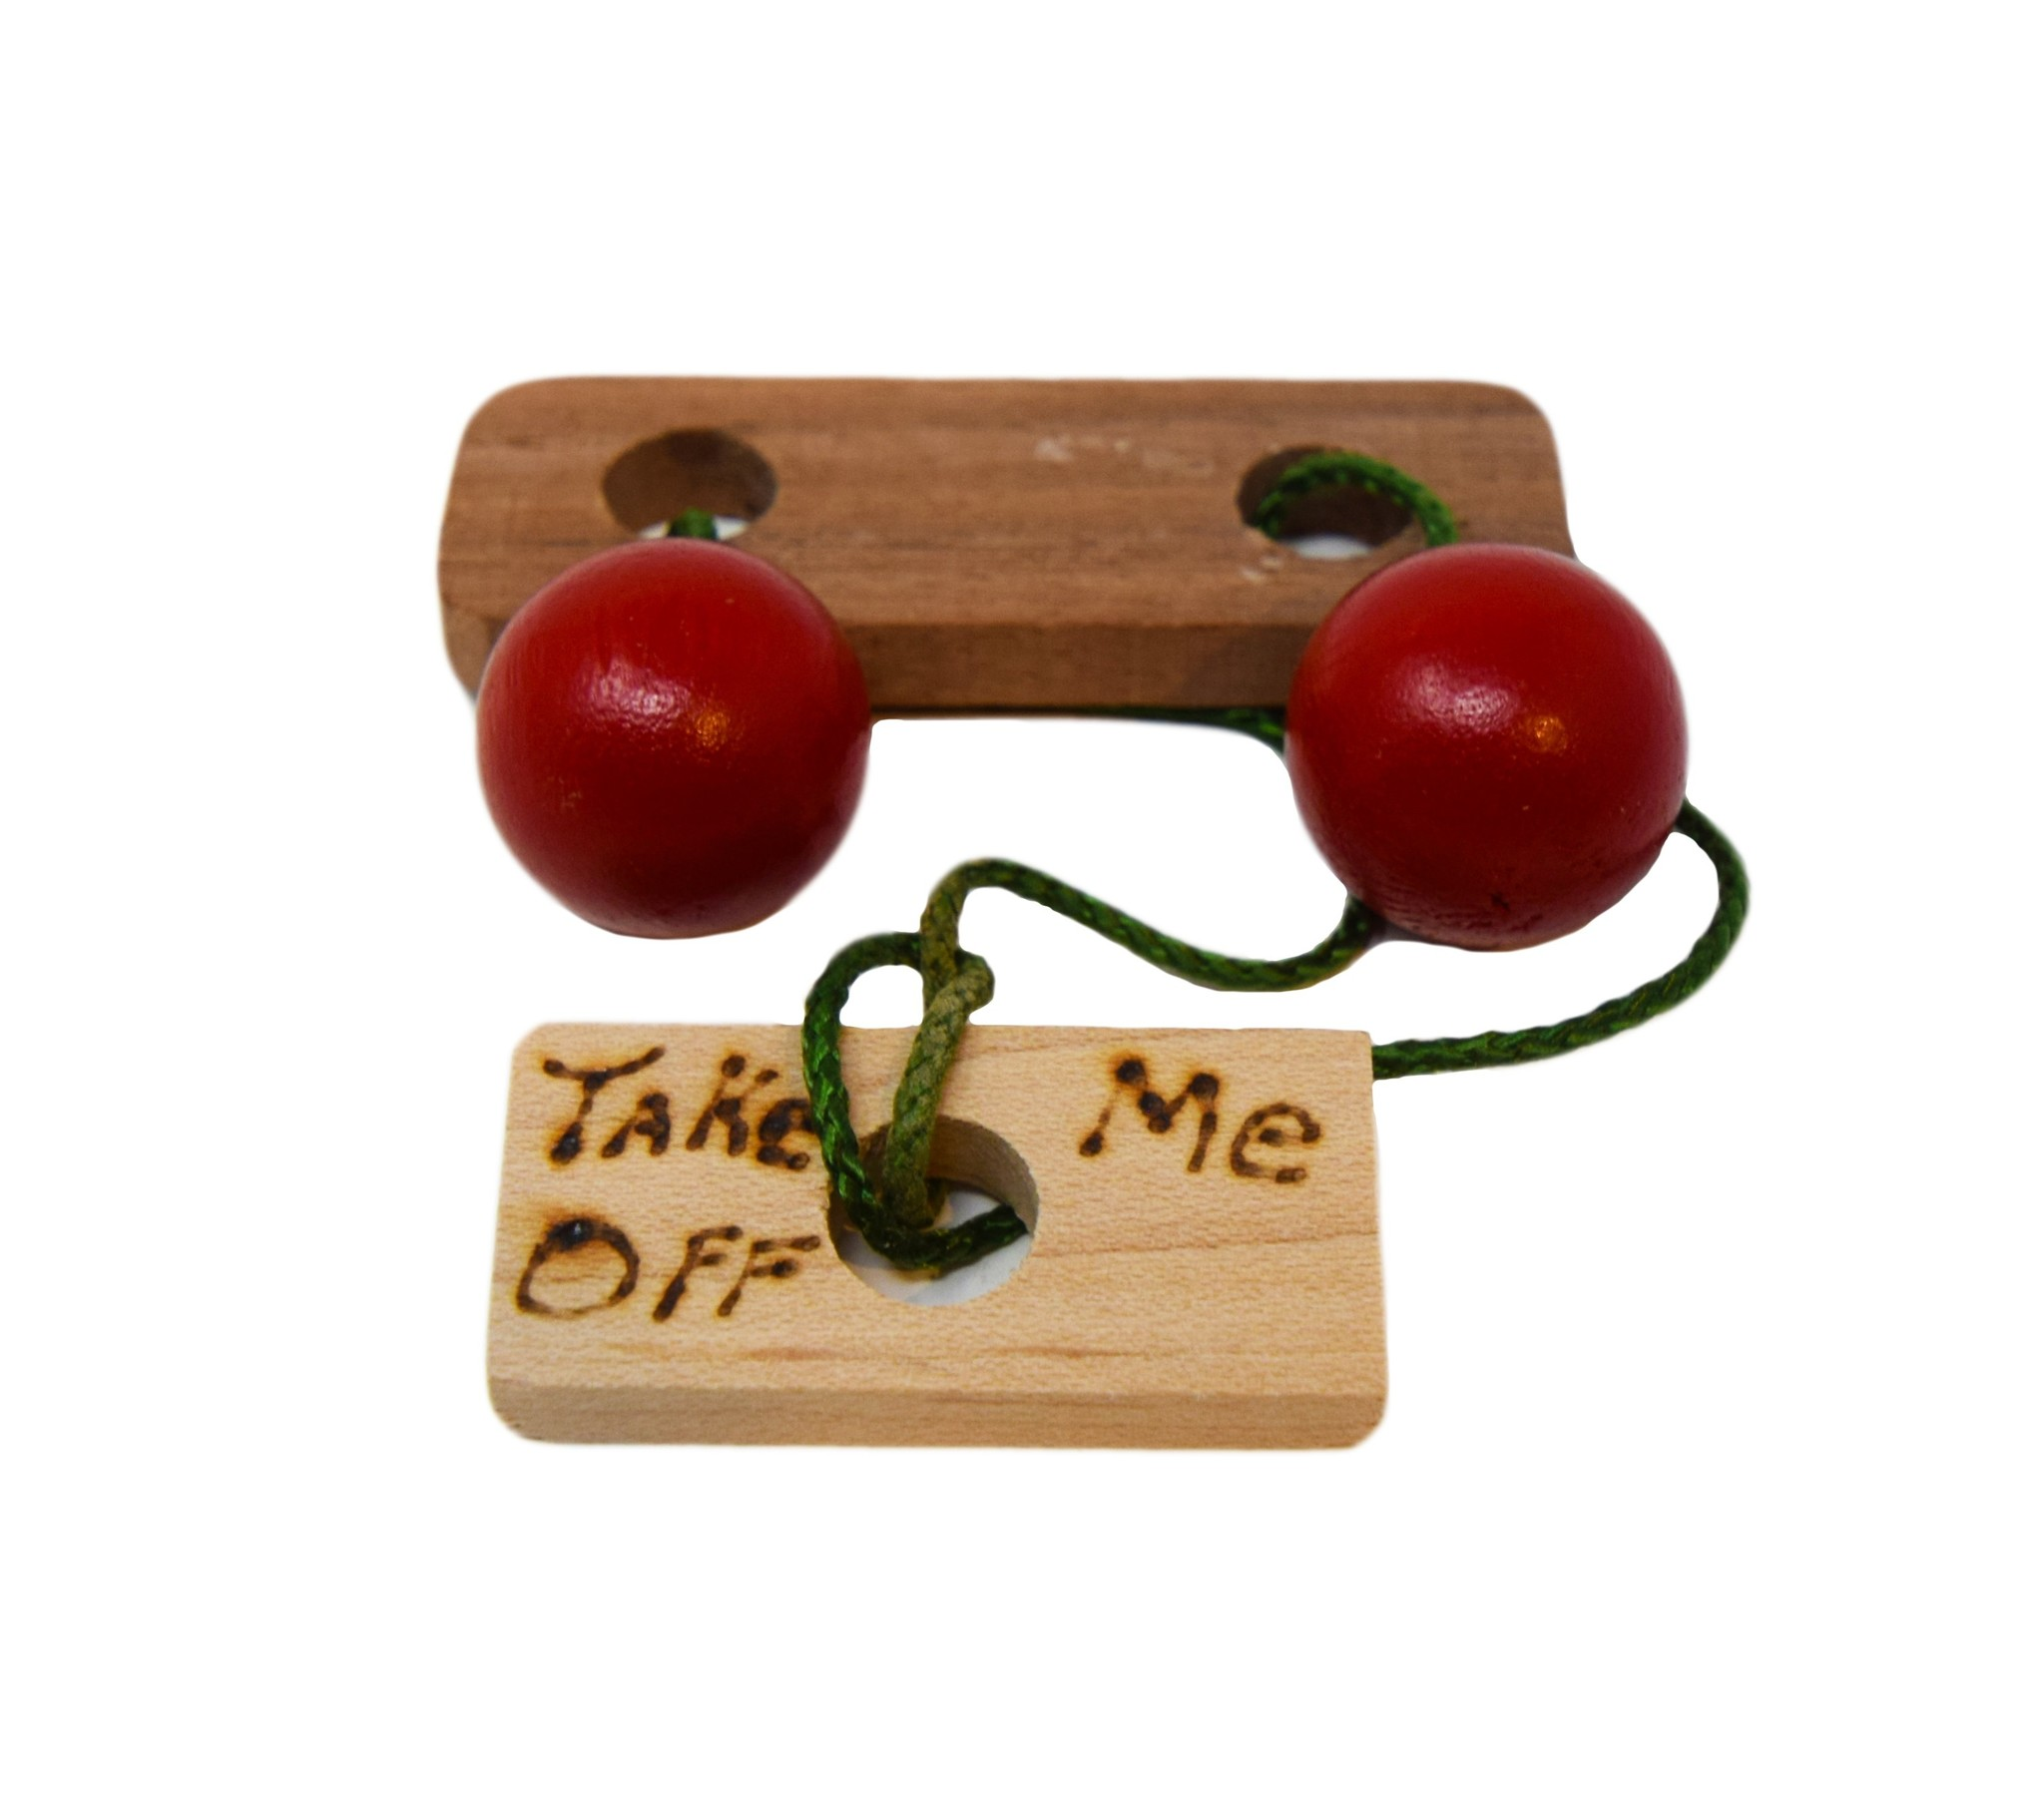 Take Me Off Puzzle from Popular Poplar Toys-2